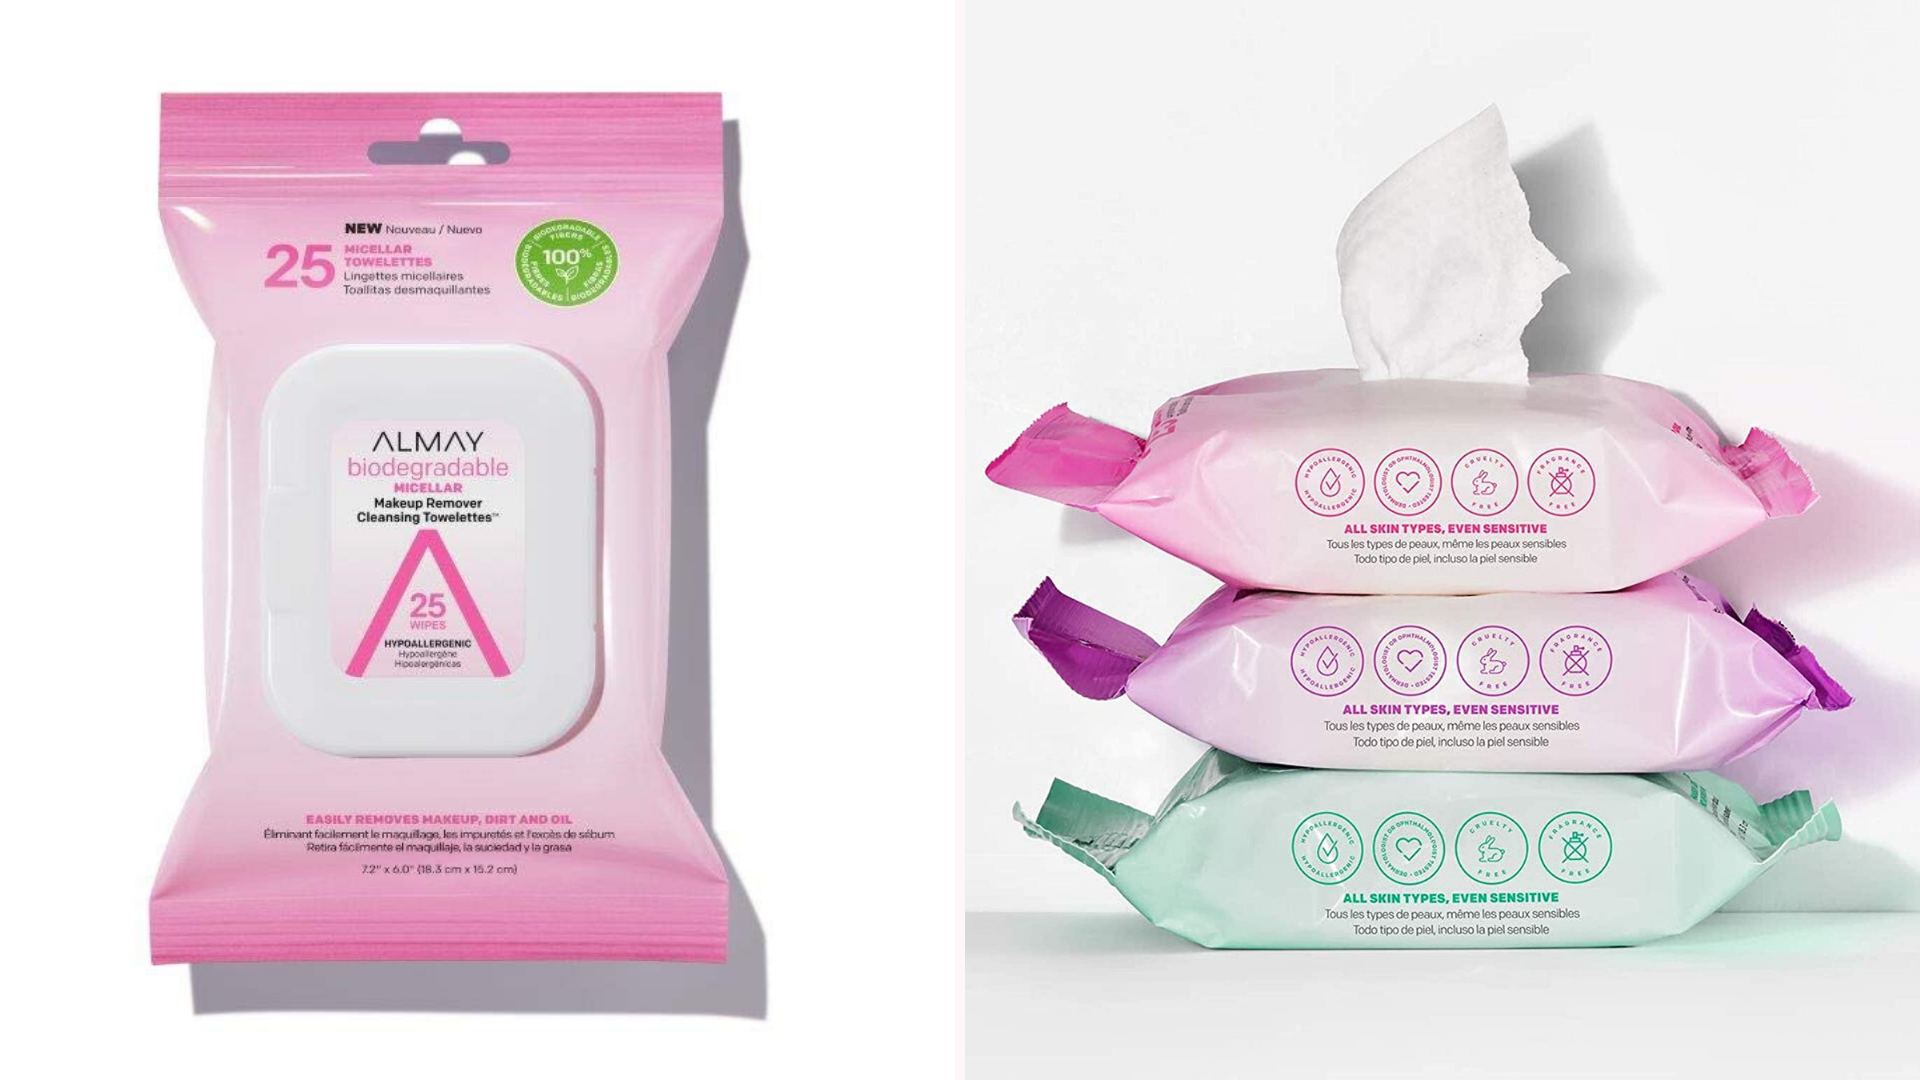 two images of Almay wipe packages, one opened